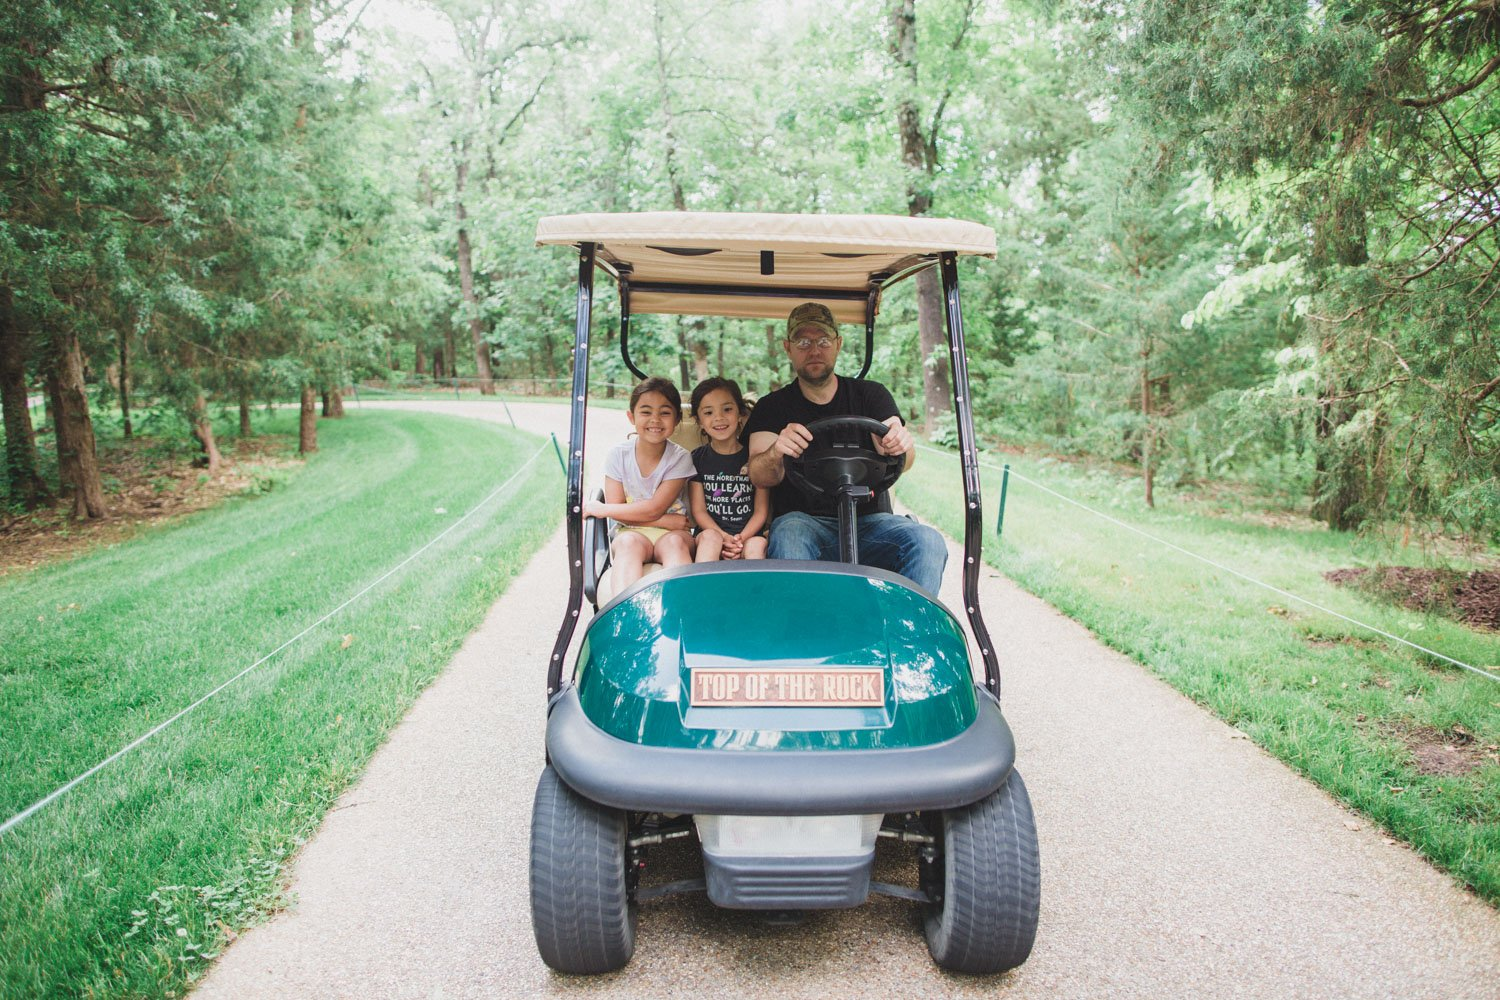 11 Things You Need to Know About the Top of the Rock Golf Cart Tour in Branson